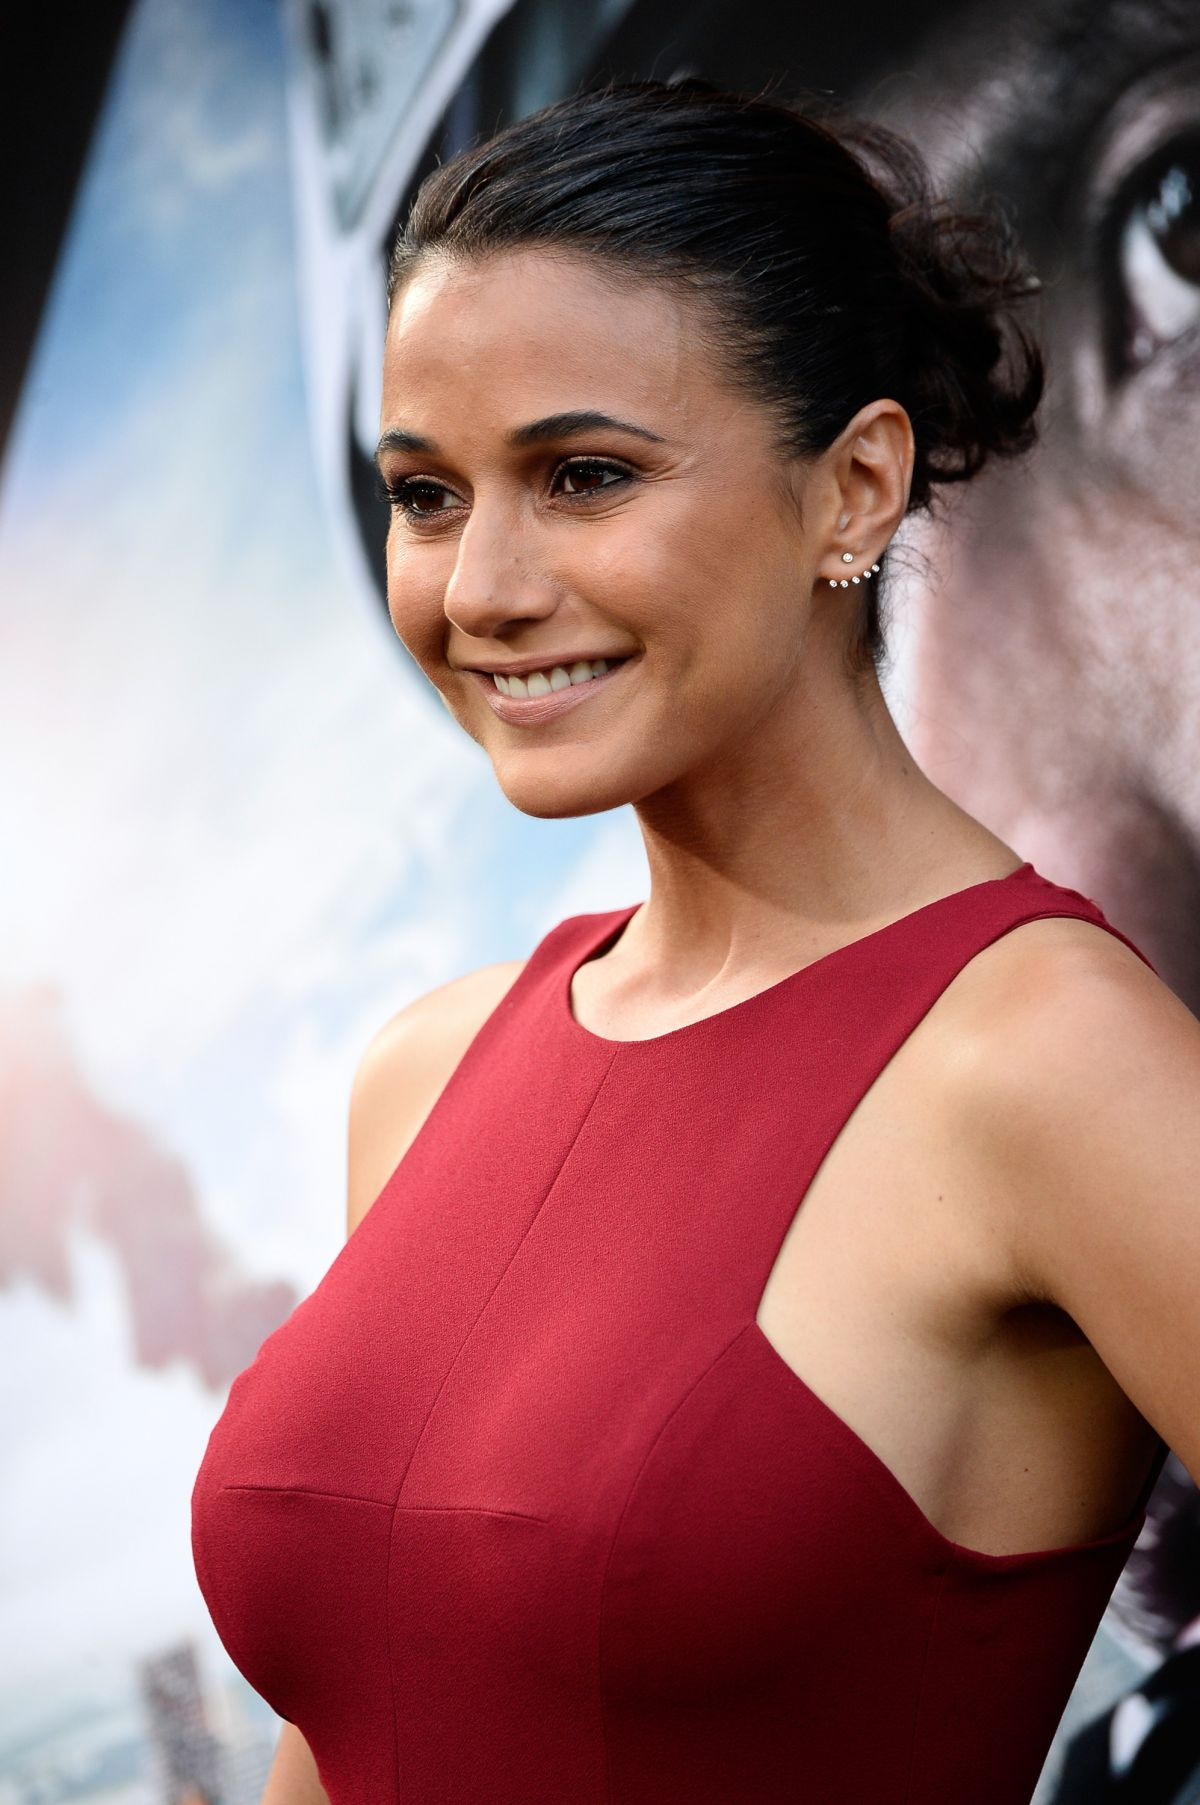 Emmanuelle chriqui photos nues